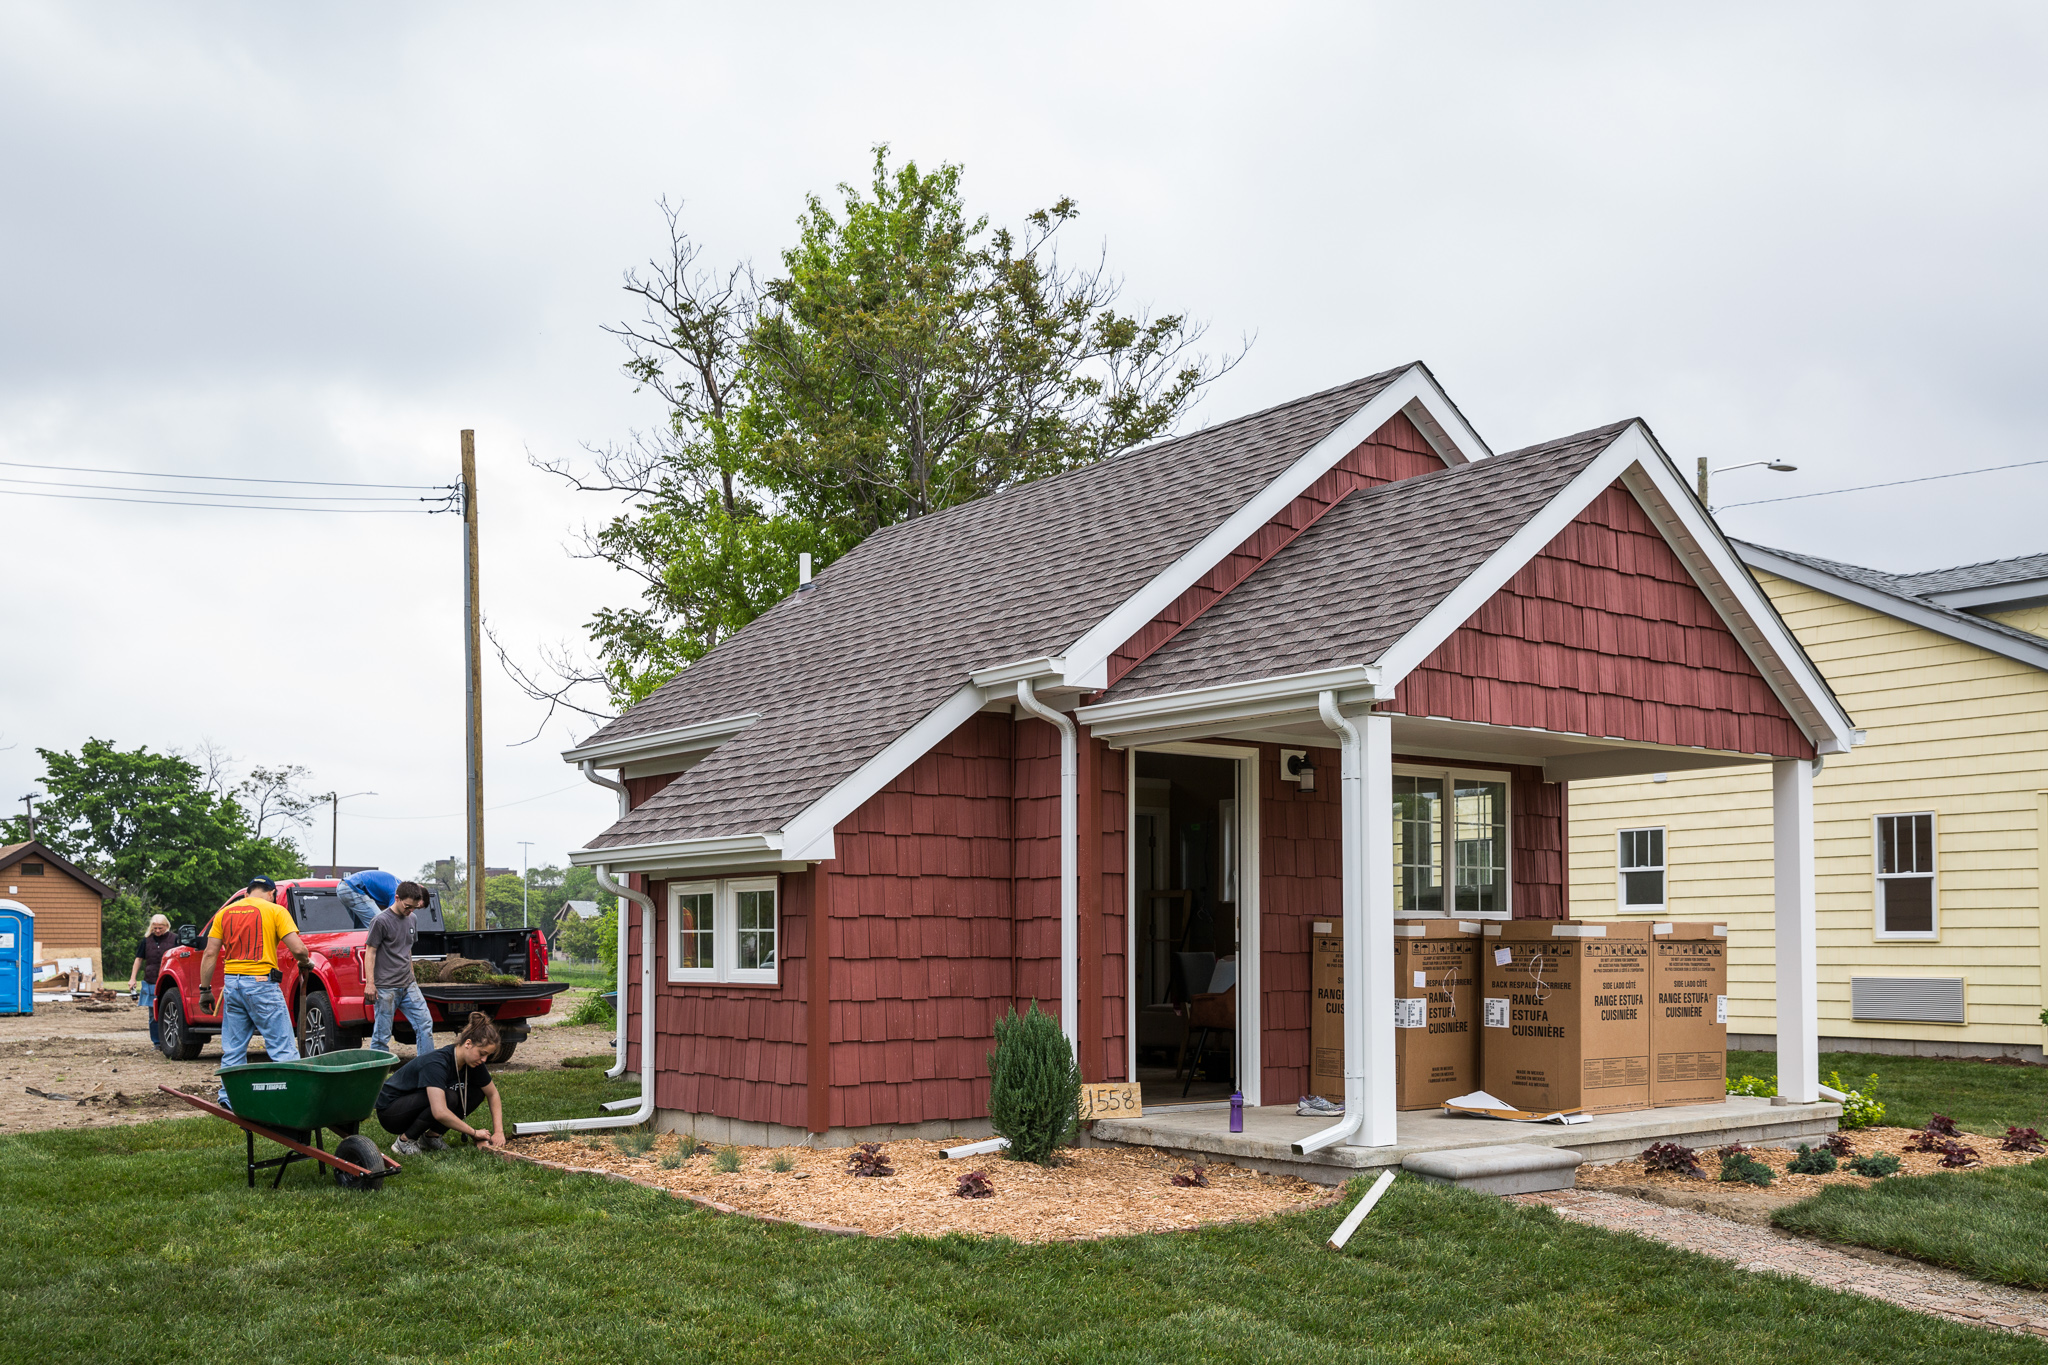 Images Of Homes a tiny home community rises in detroit - curbed detroit